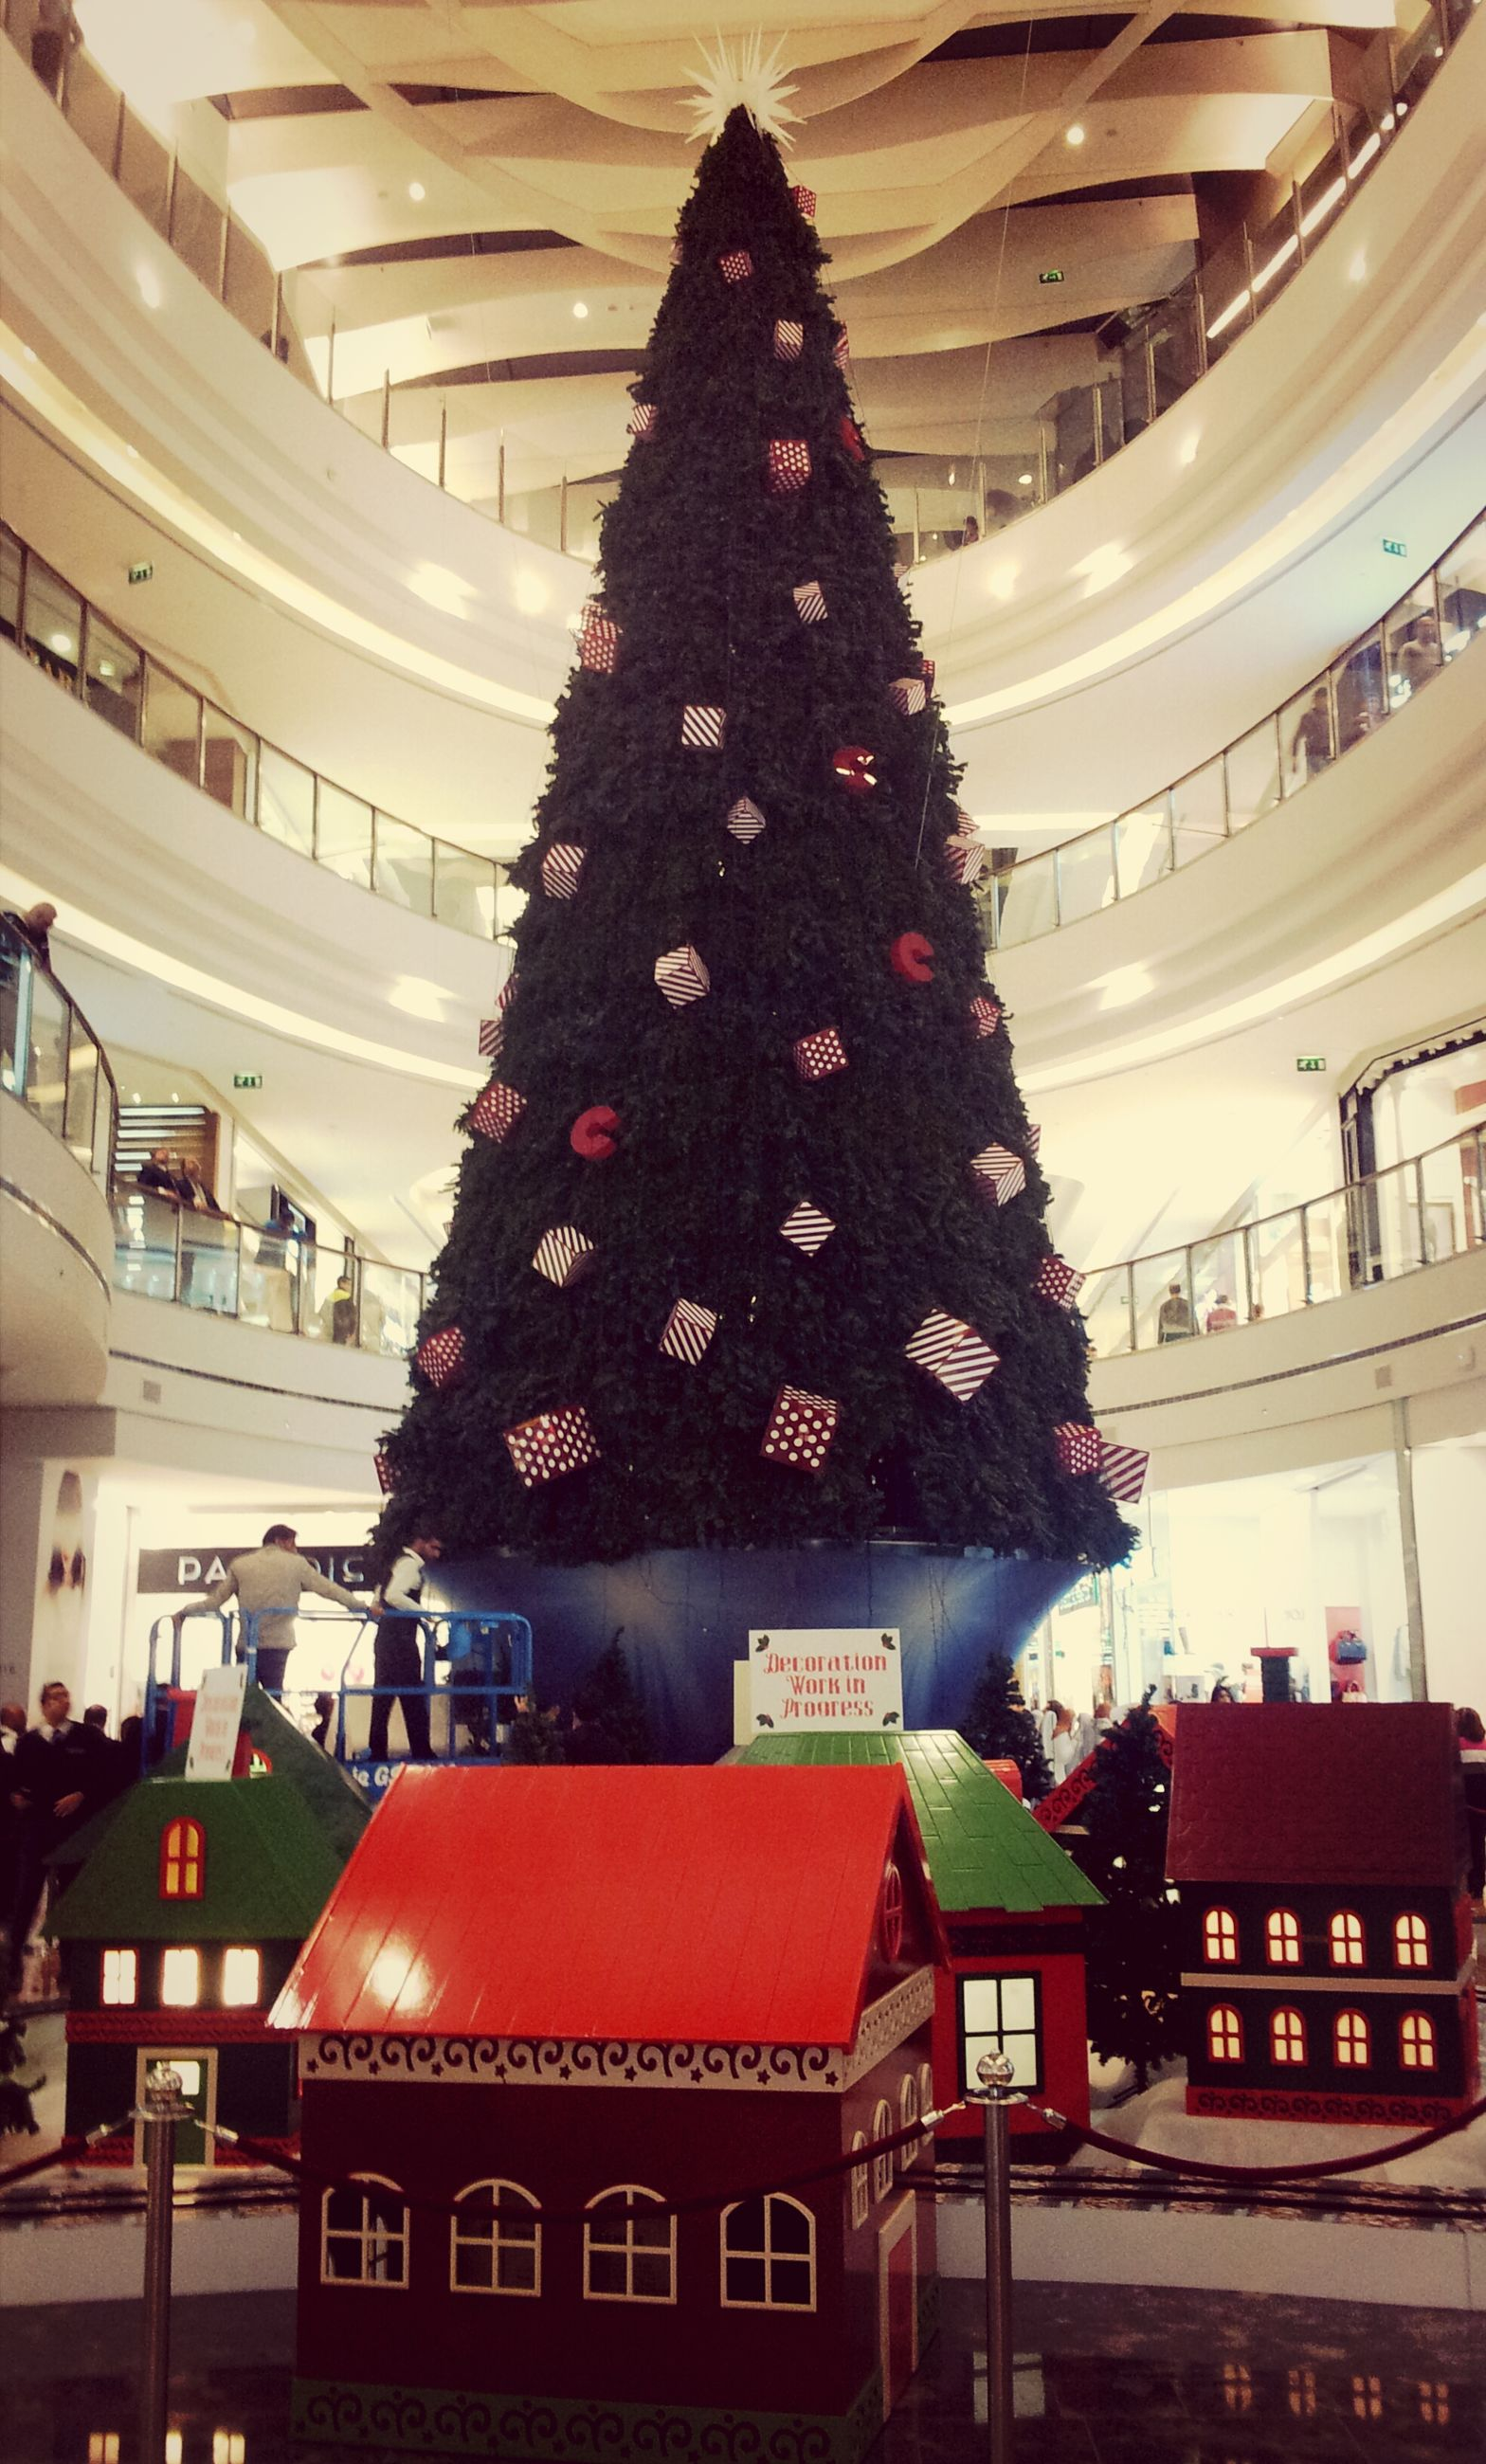 architecture, building exterior, built structure, freshness, decoration, celebration, hanging, christmas, christmas tree, flower, tradition, red, illuminated, high angle view, city, incidental people, christmas decoration, roof, outdoors